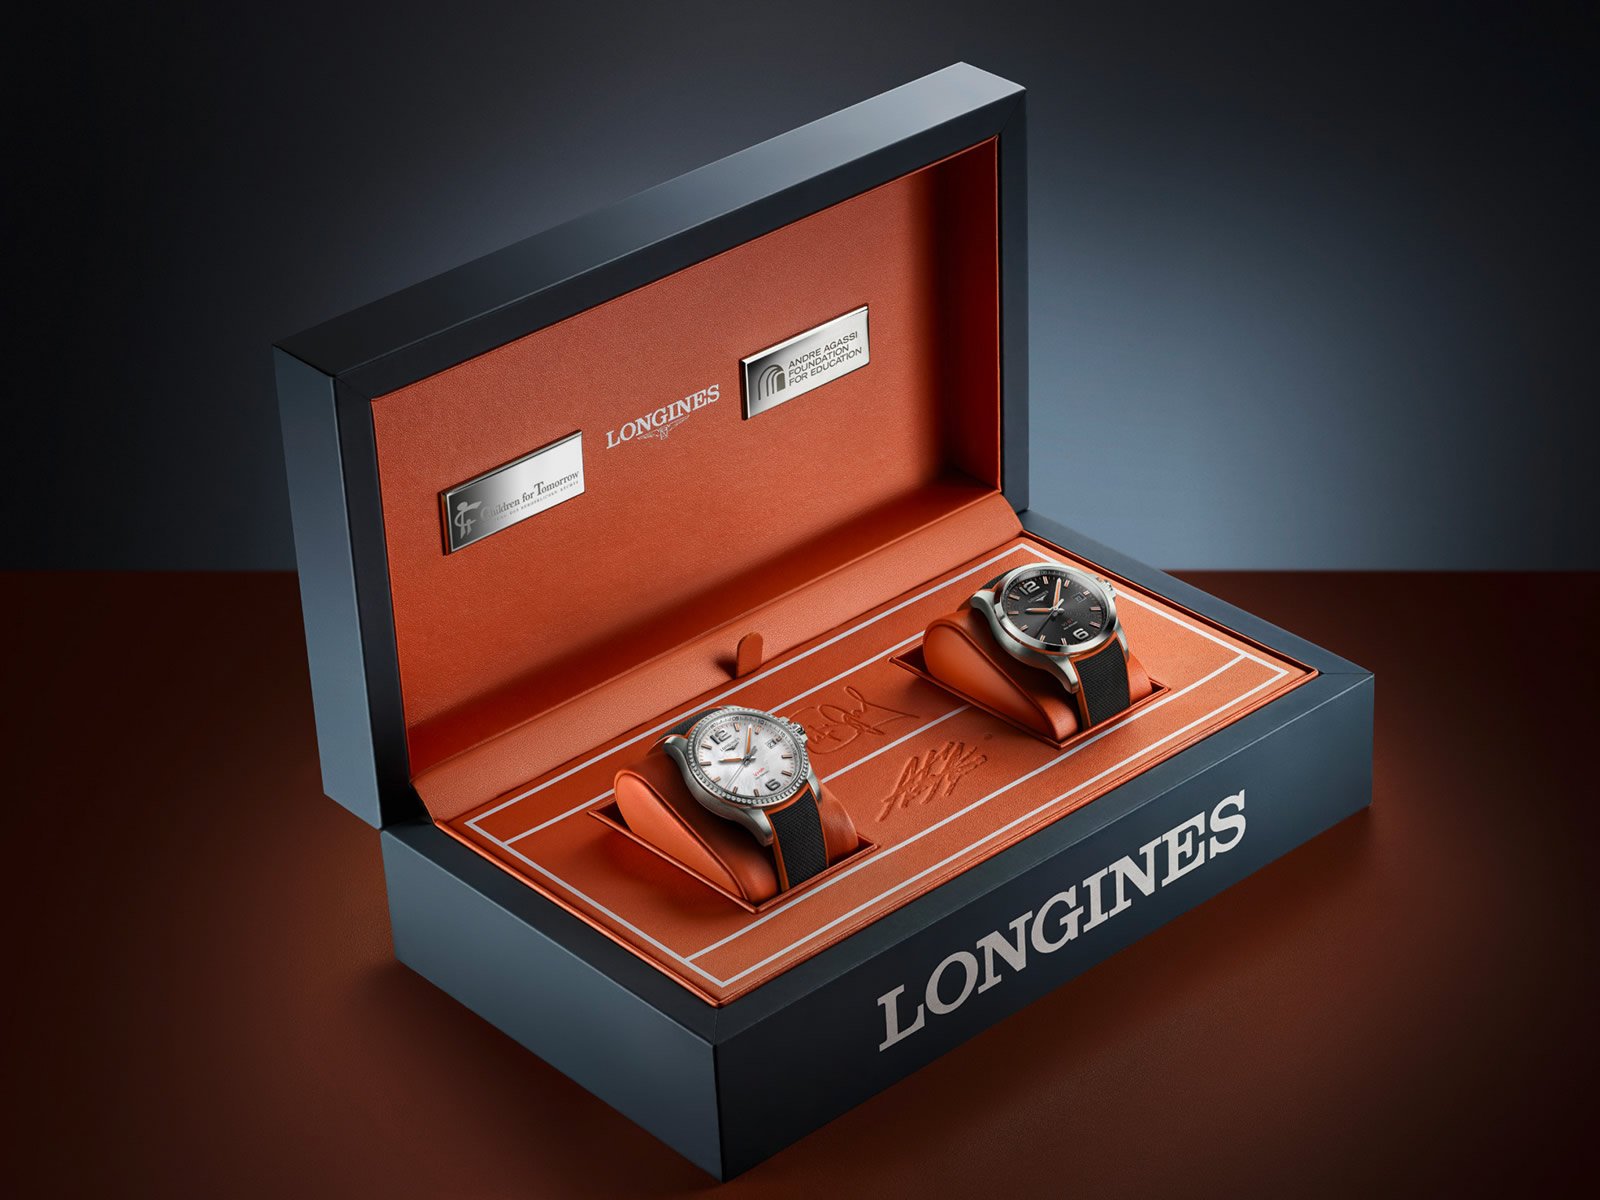 longines-steffi-graf-andre-agassi-special-editions-2-.jpg